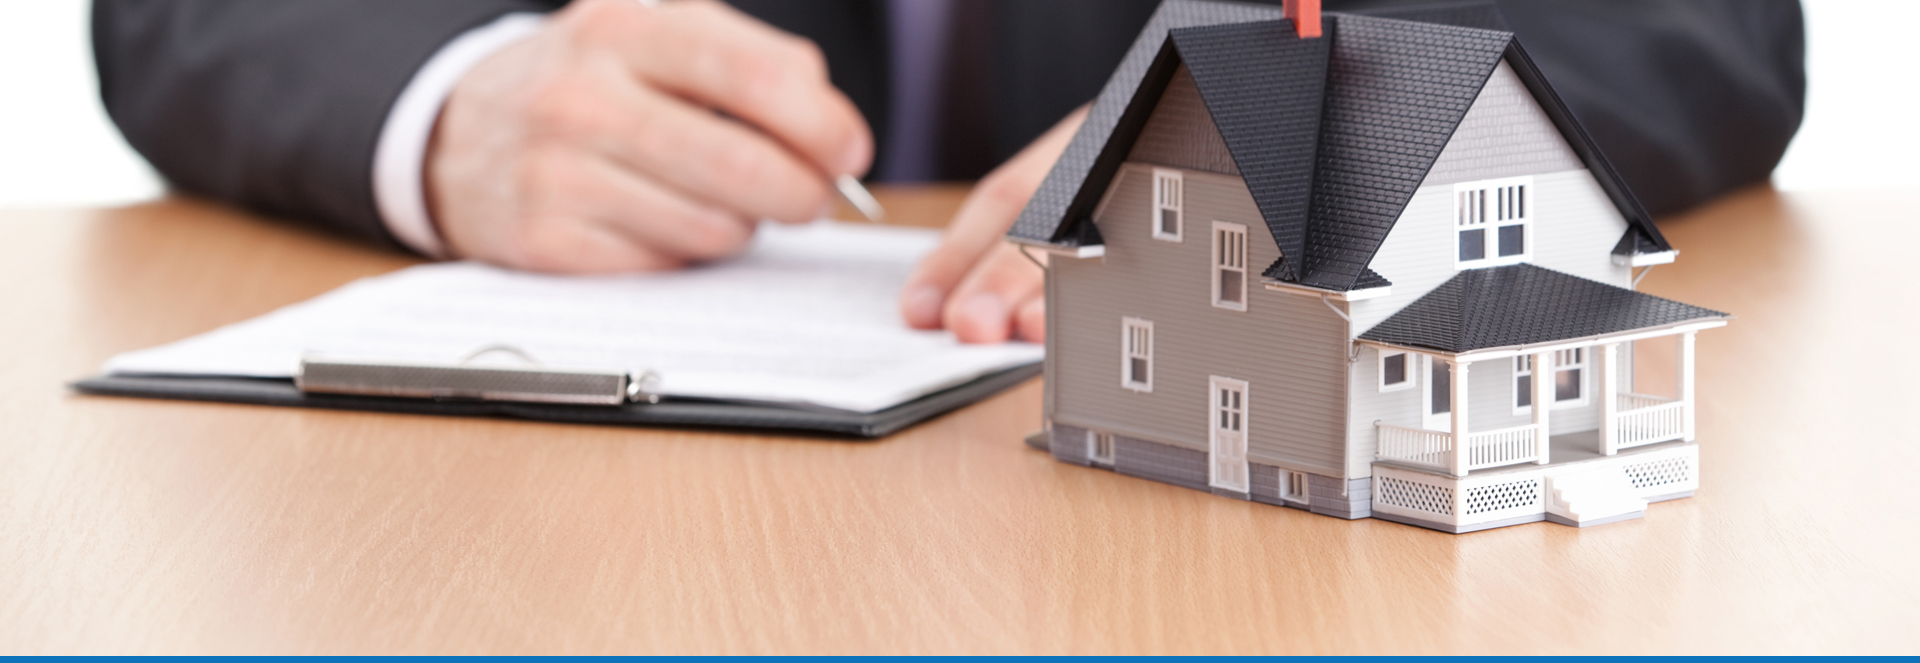 About Perfect Agent. Person signing real estate contract on table, behind a small house.